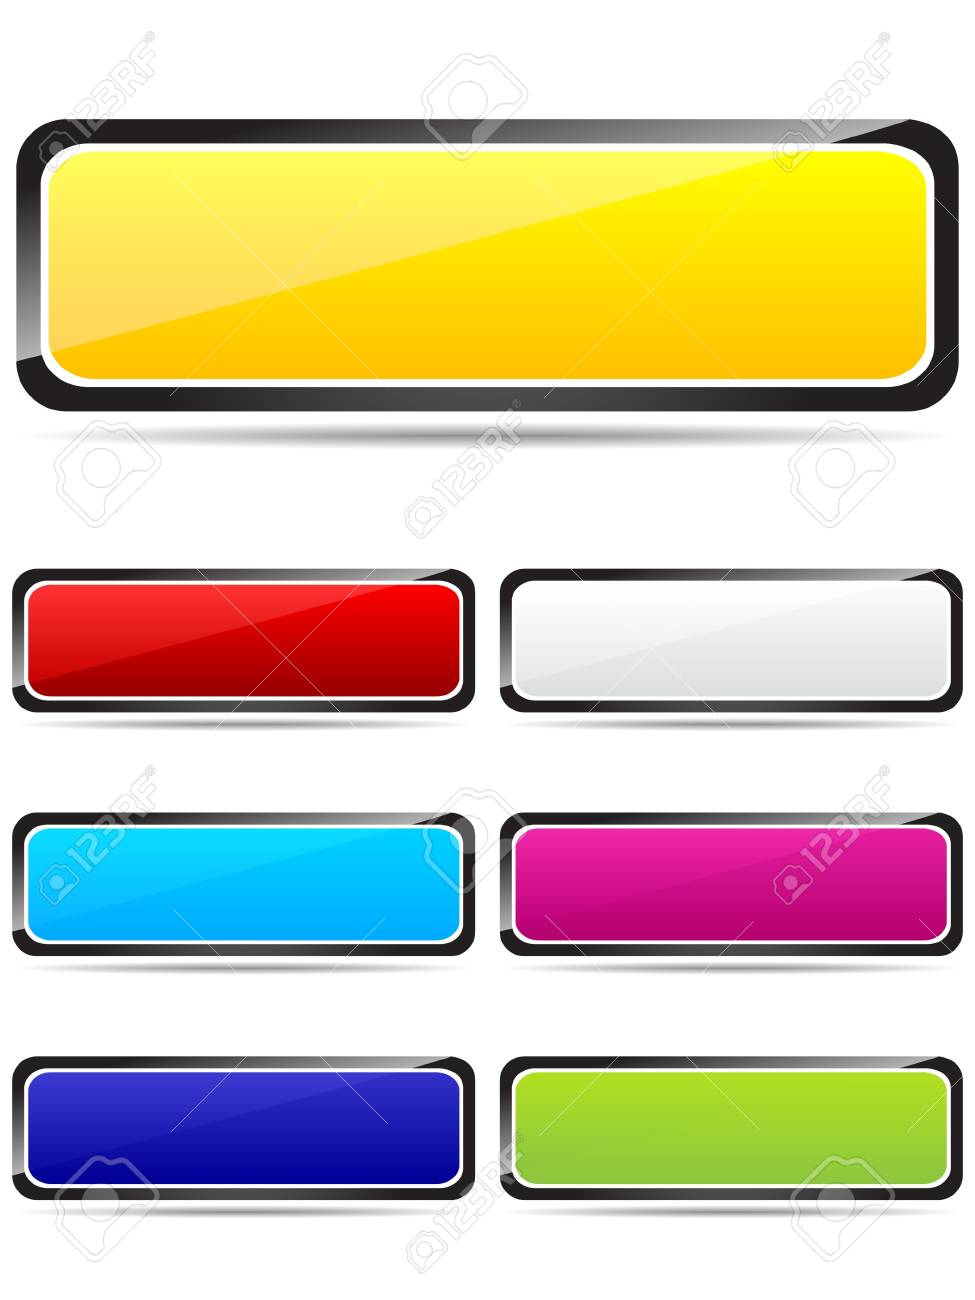 Colorful rectangle buttons vector illustration Stock Vector - 10568112